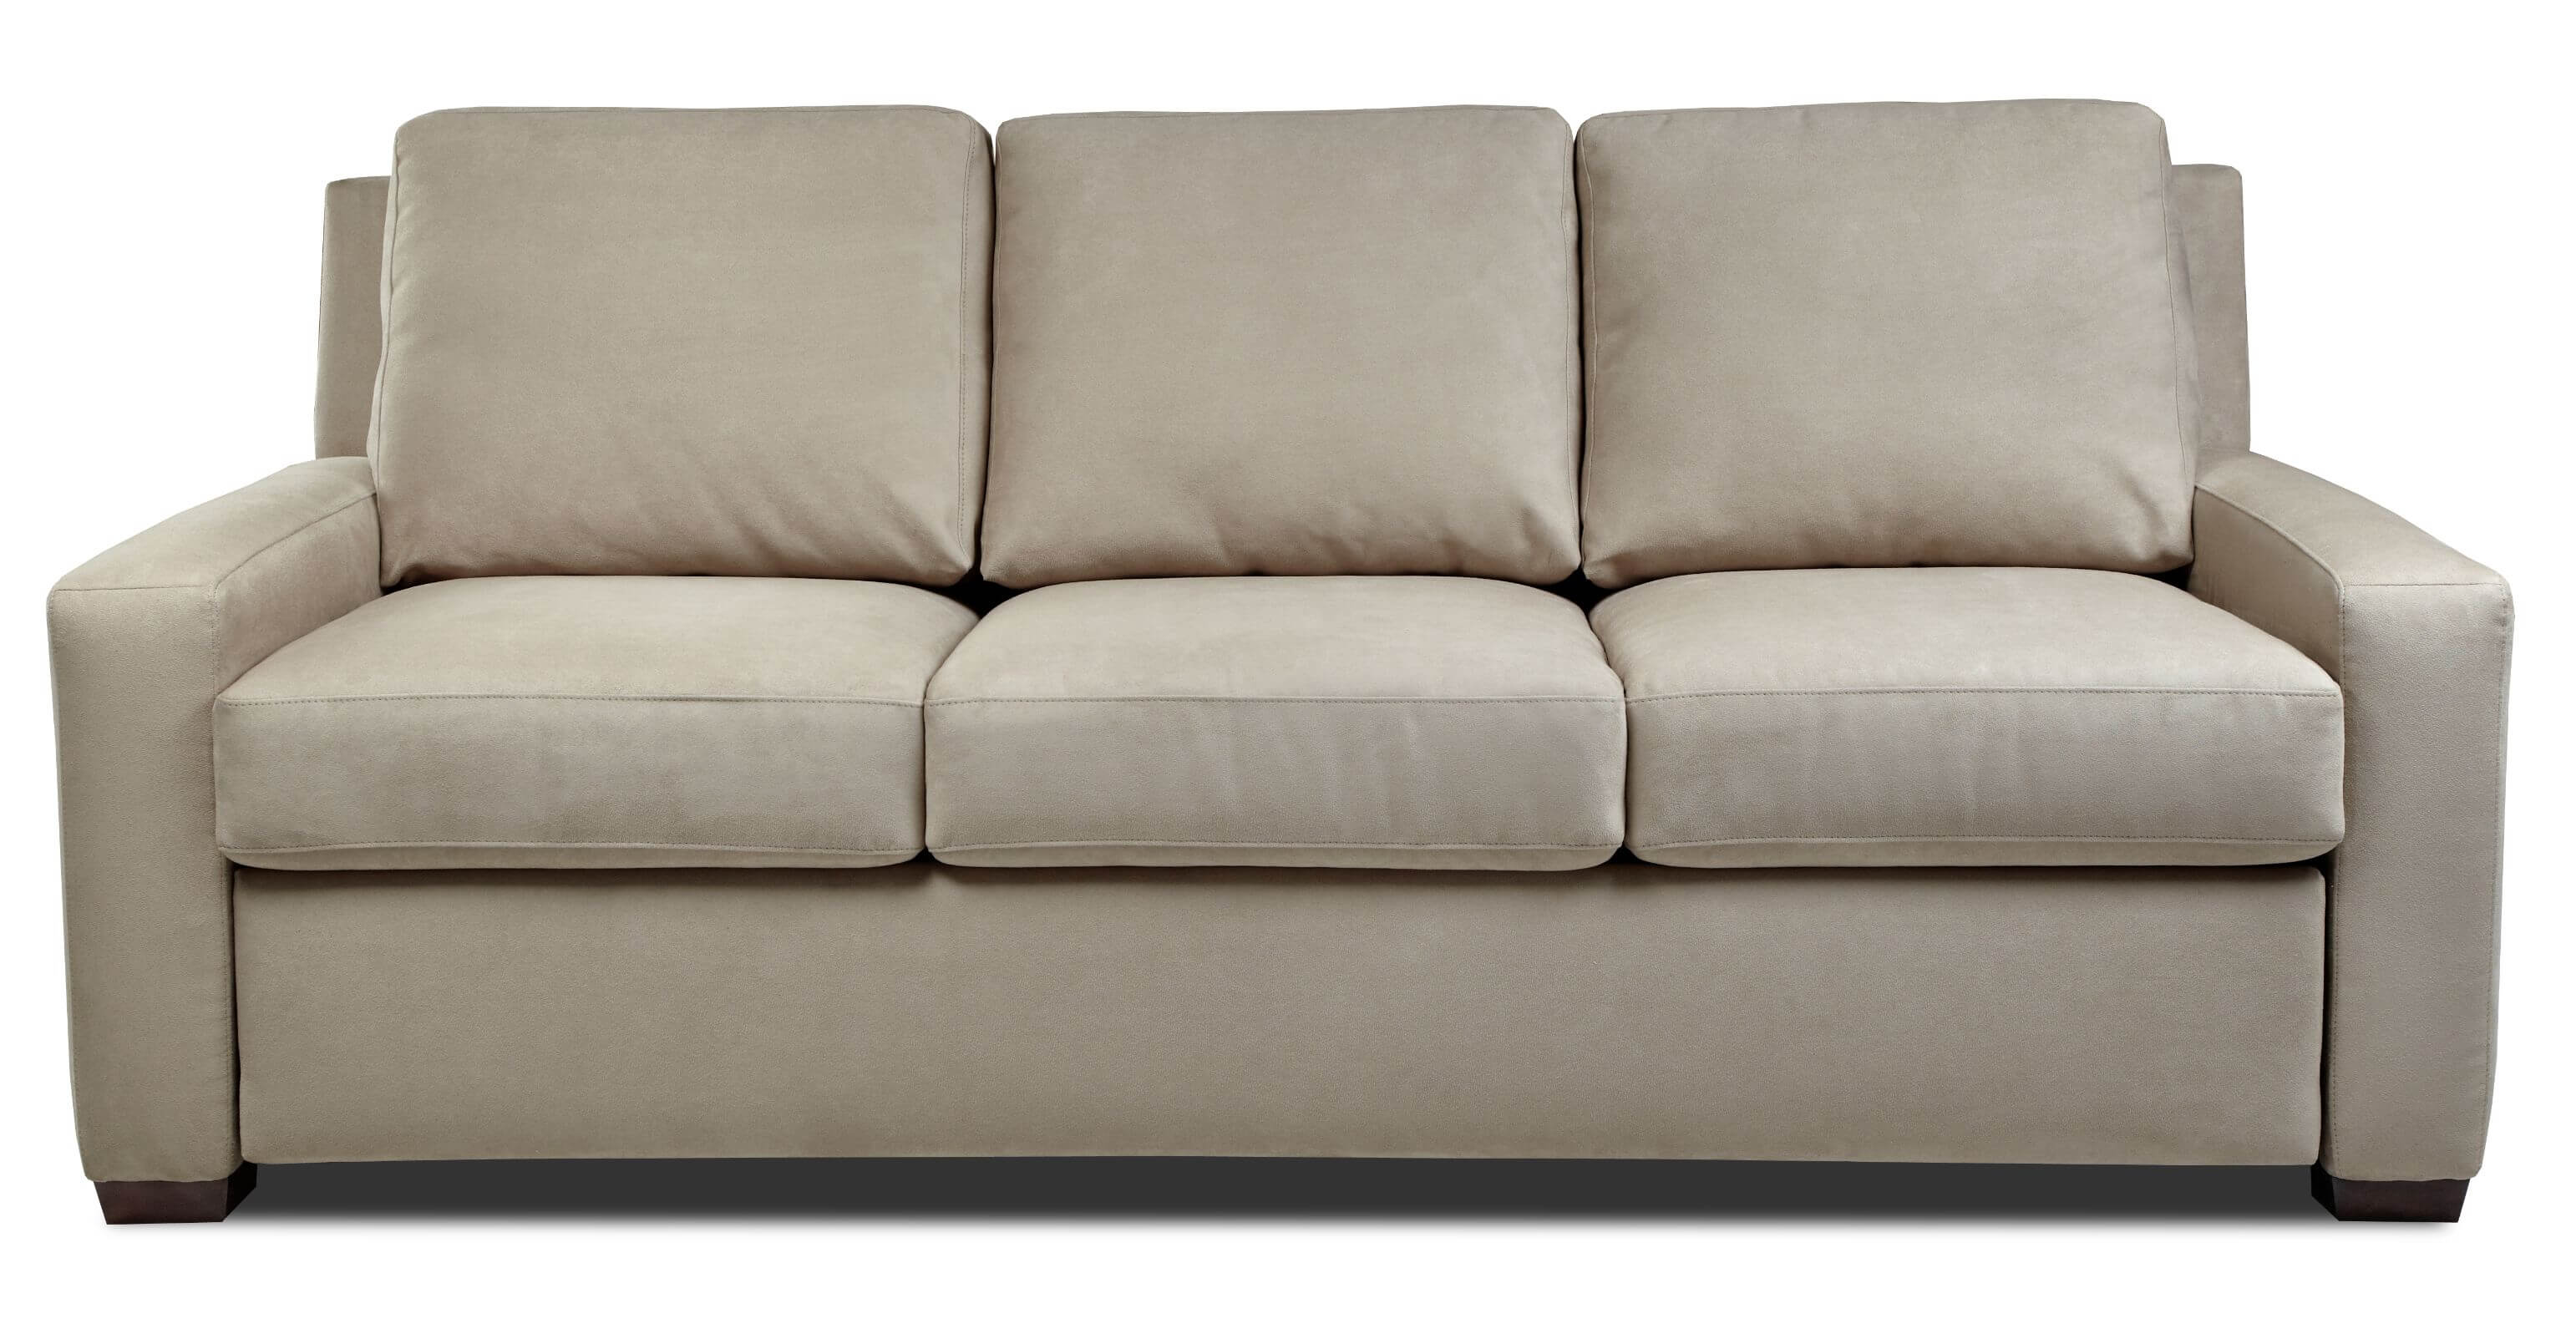 Sofa, Sleeper, couches, Comfort Sleeper, American Leather, seating